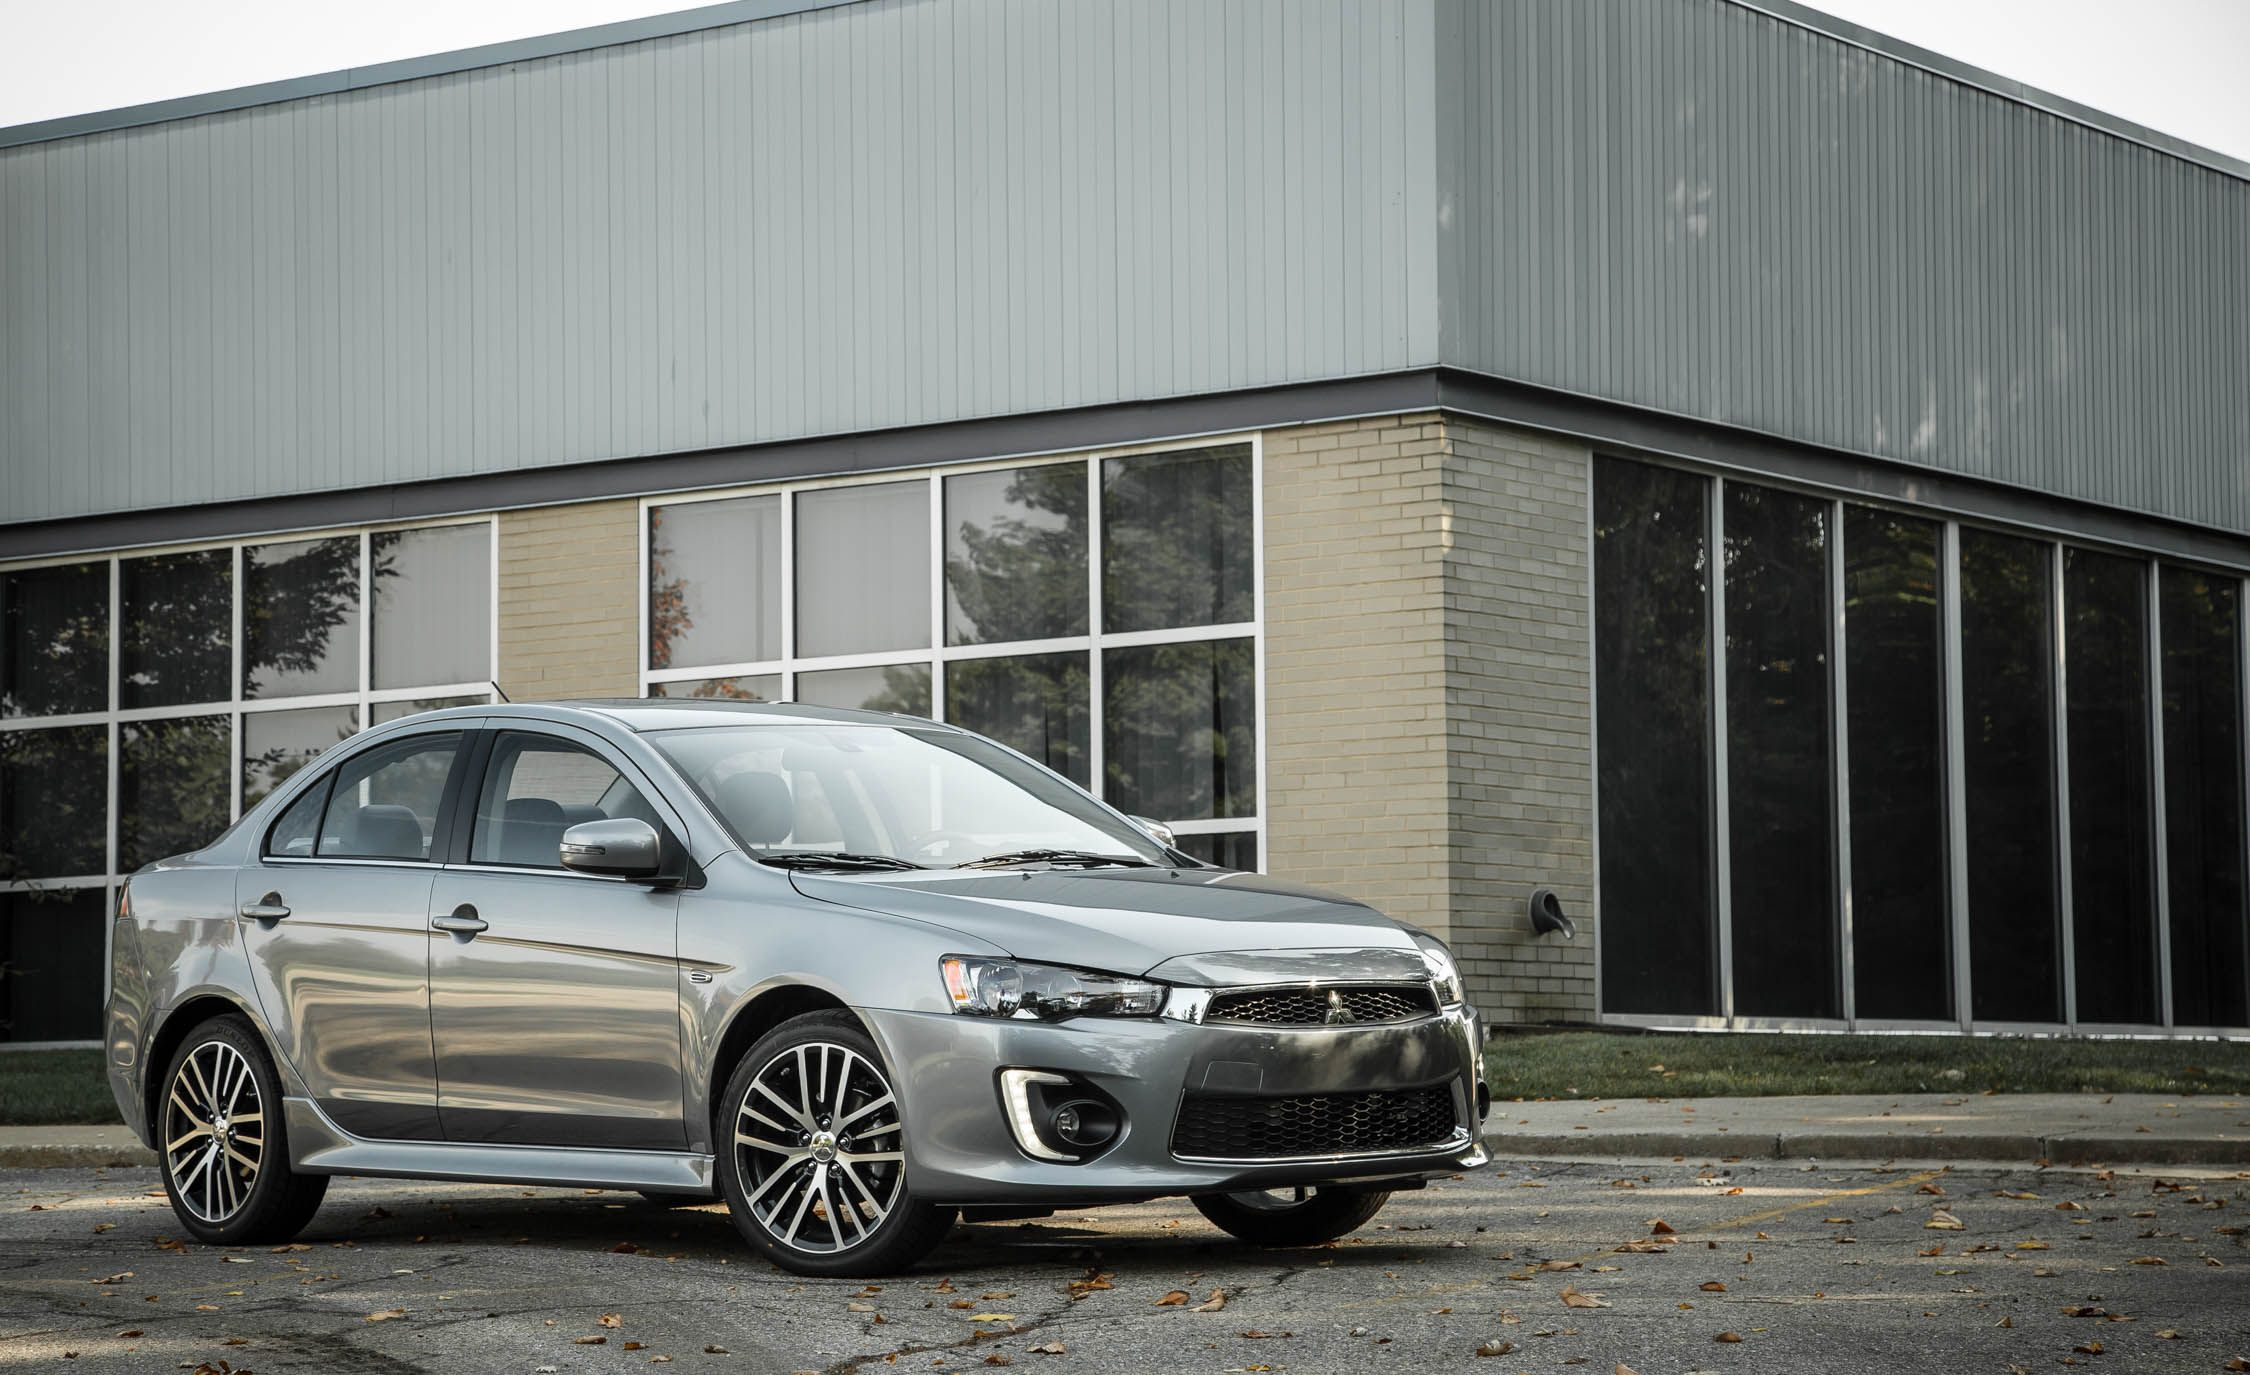 2017 Mitsubishi Lancer Reviews Price Photos And Specs Car Driver